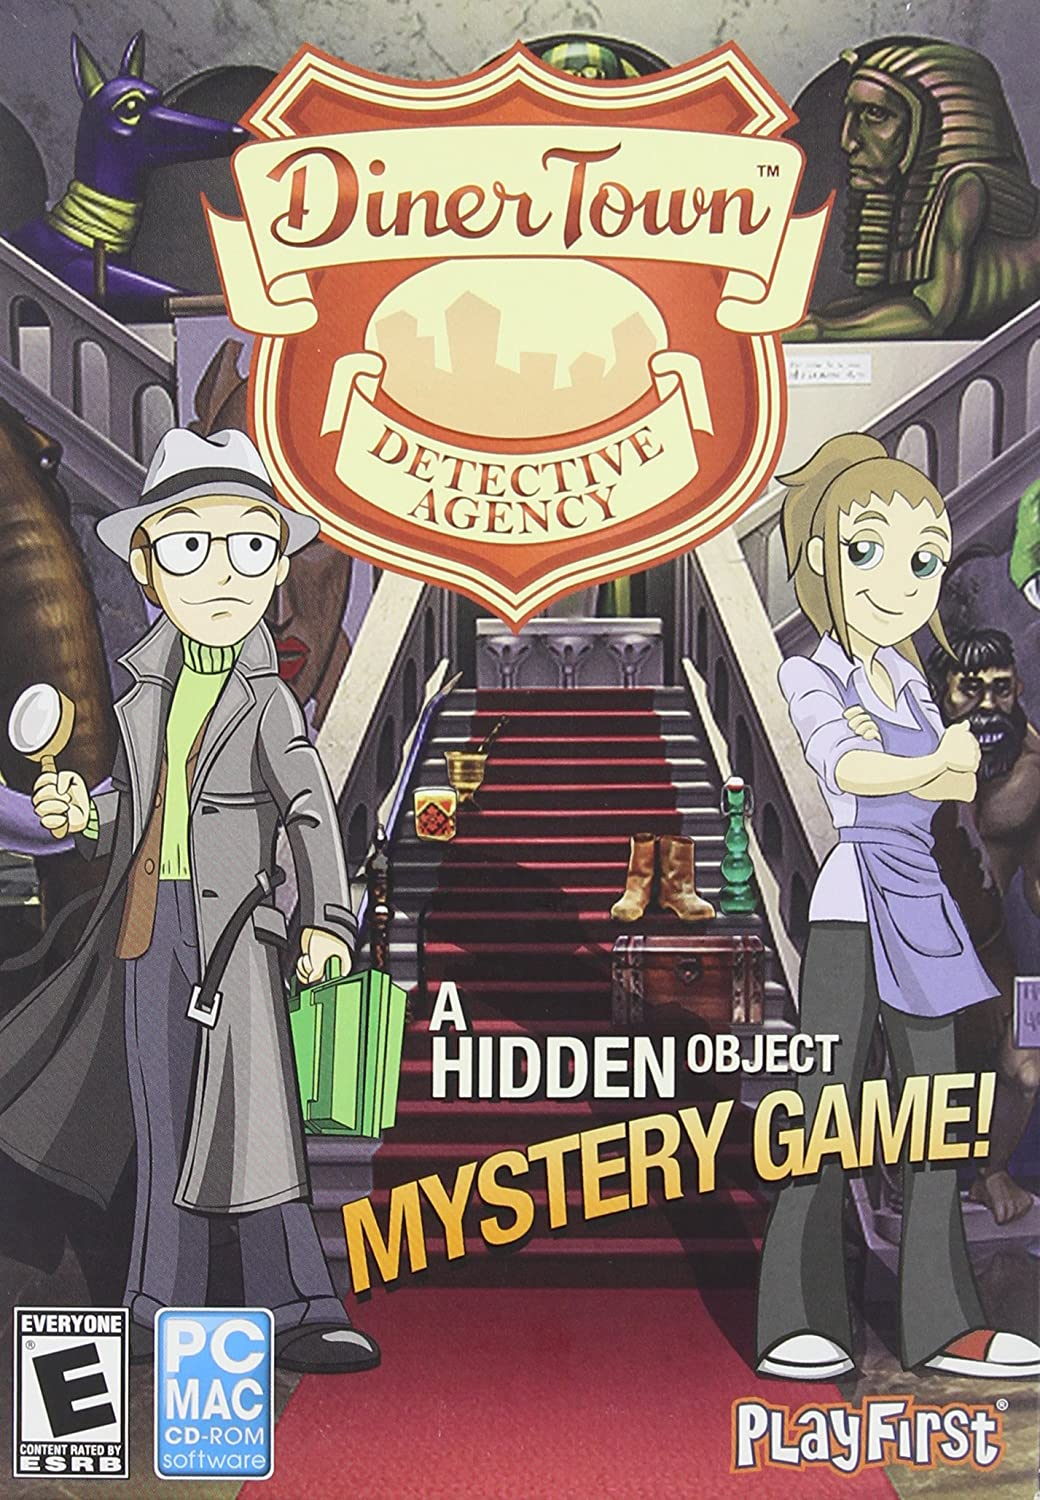 dinertown detective agency free download full version